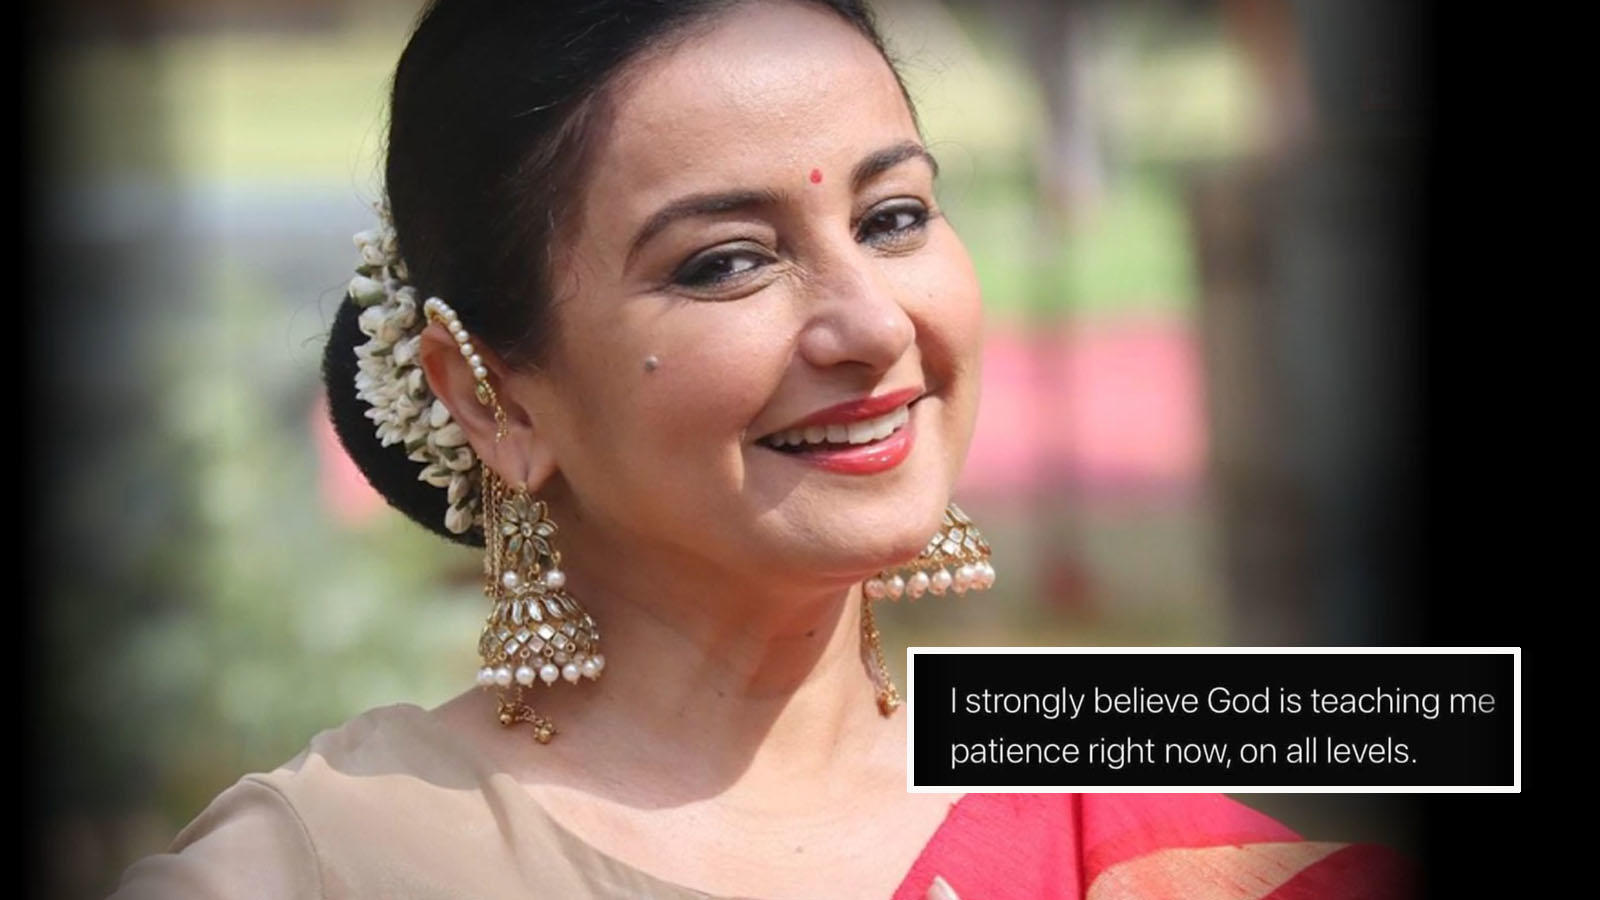 Divya Dutta shares a cryptic post on social media: 'God is teaching me patience right now' | Hindi Movie News – Bollywood – Times of India